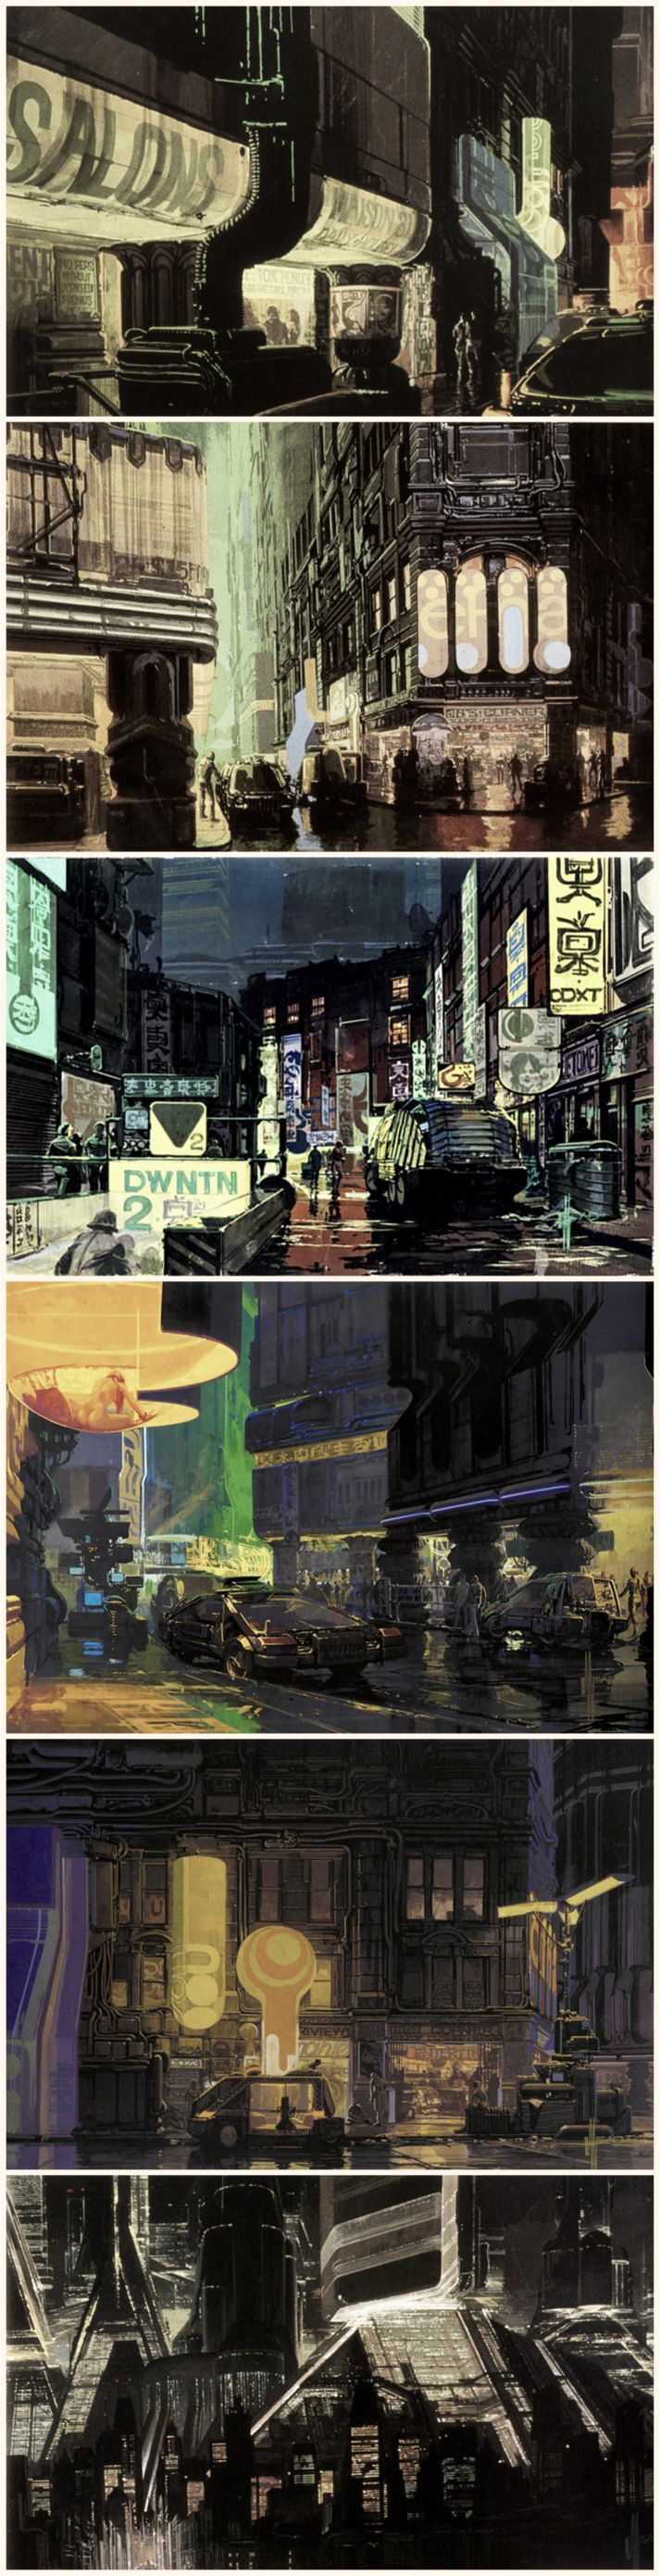 """""""Blade Runner"""" concept art by Syd Mead. Syd Mead created a artwork what show a life in a night city. I think that this should be different and experimental to try."""